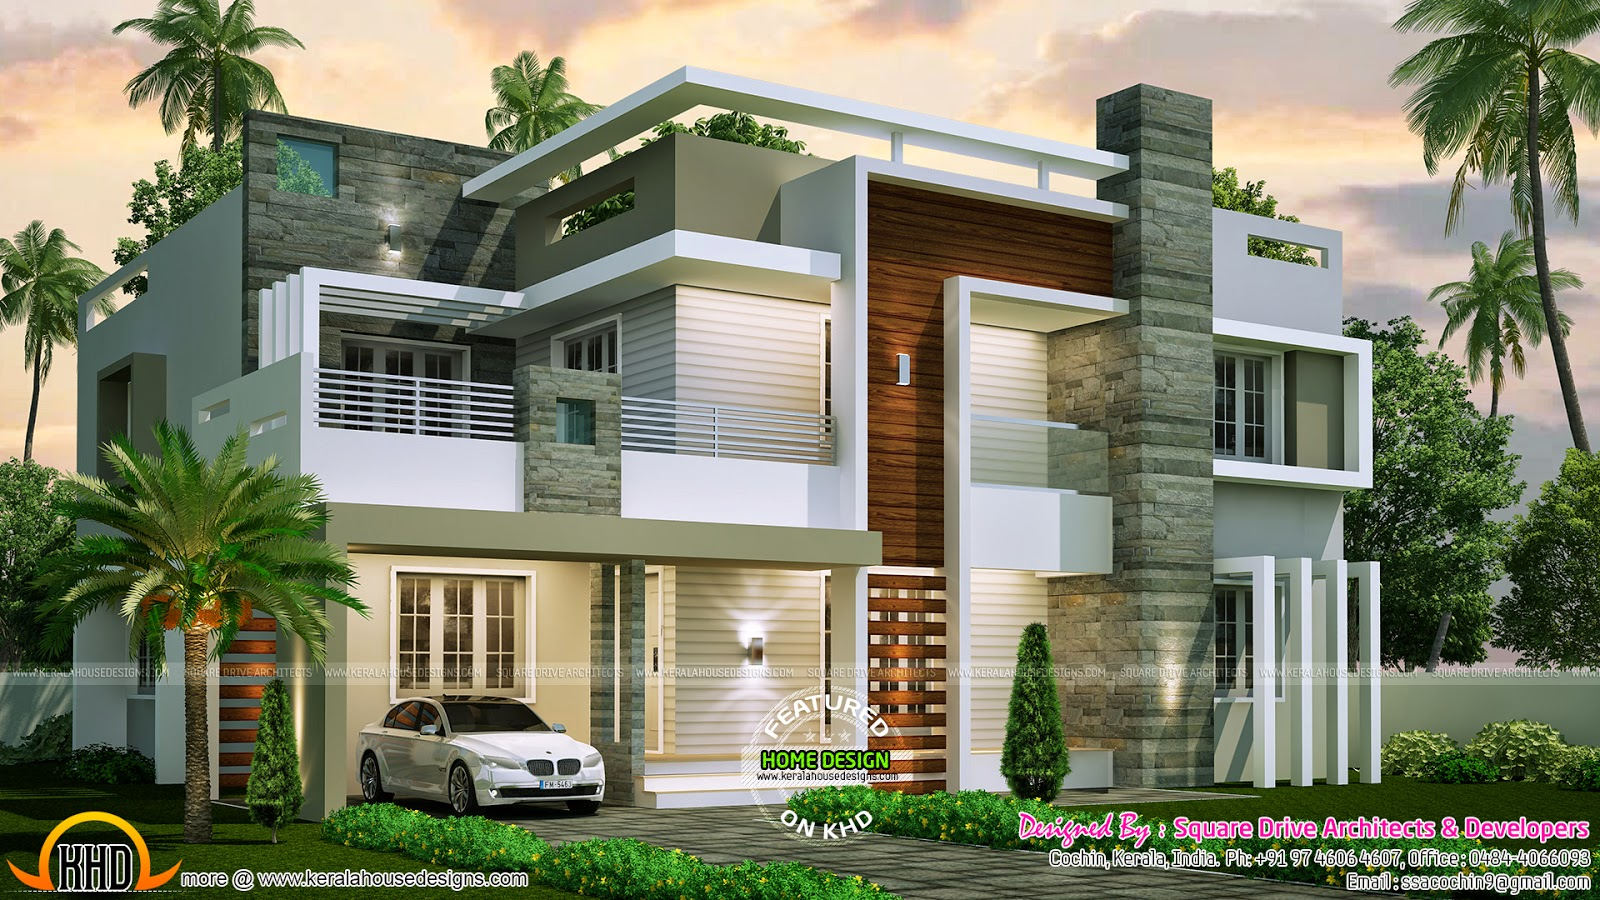 4 bedroom contemporary home design kerala home design for Home designers in my area